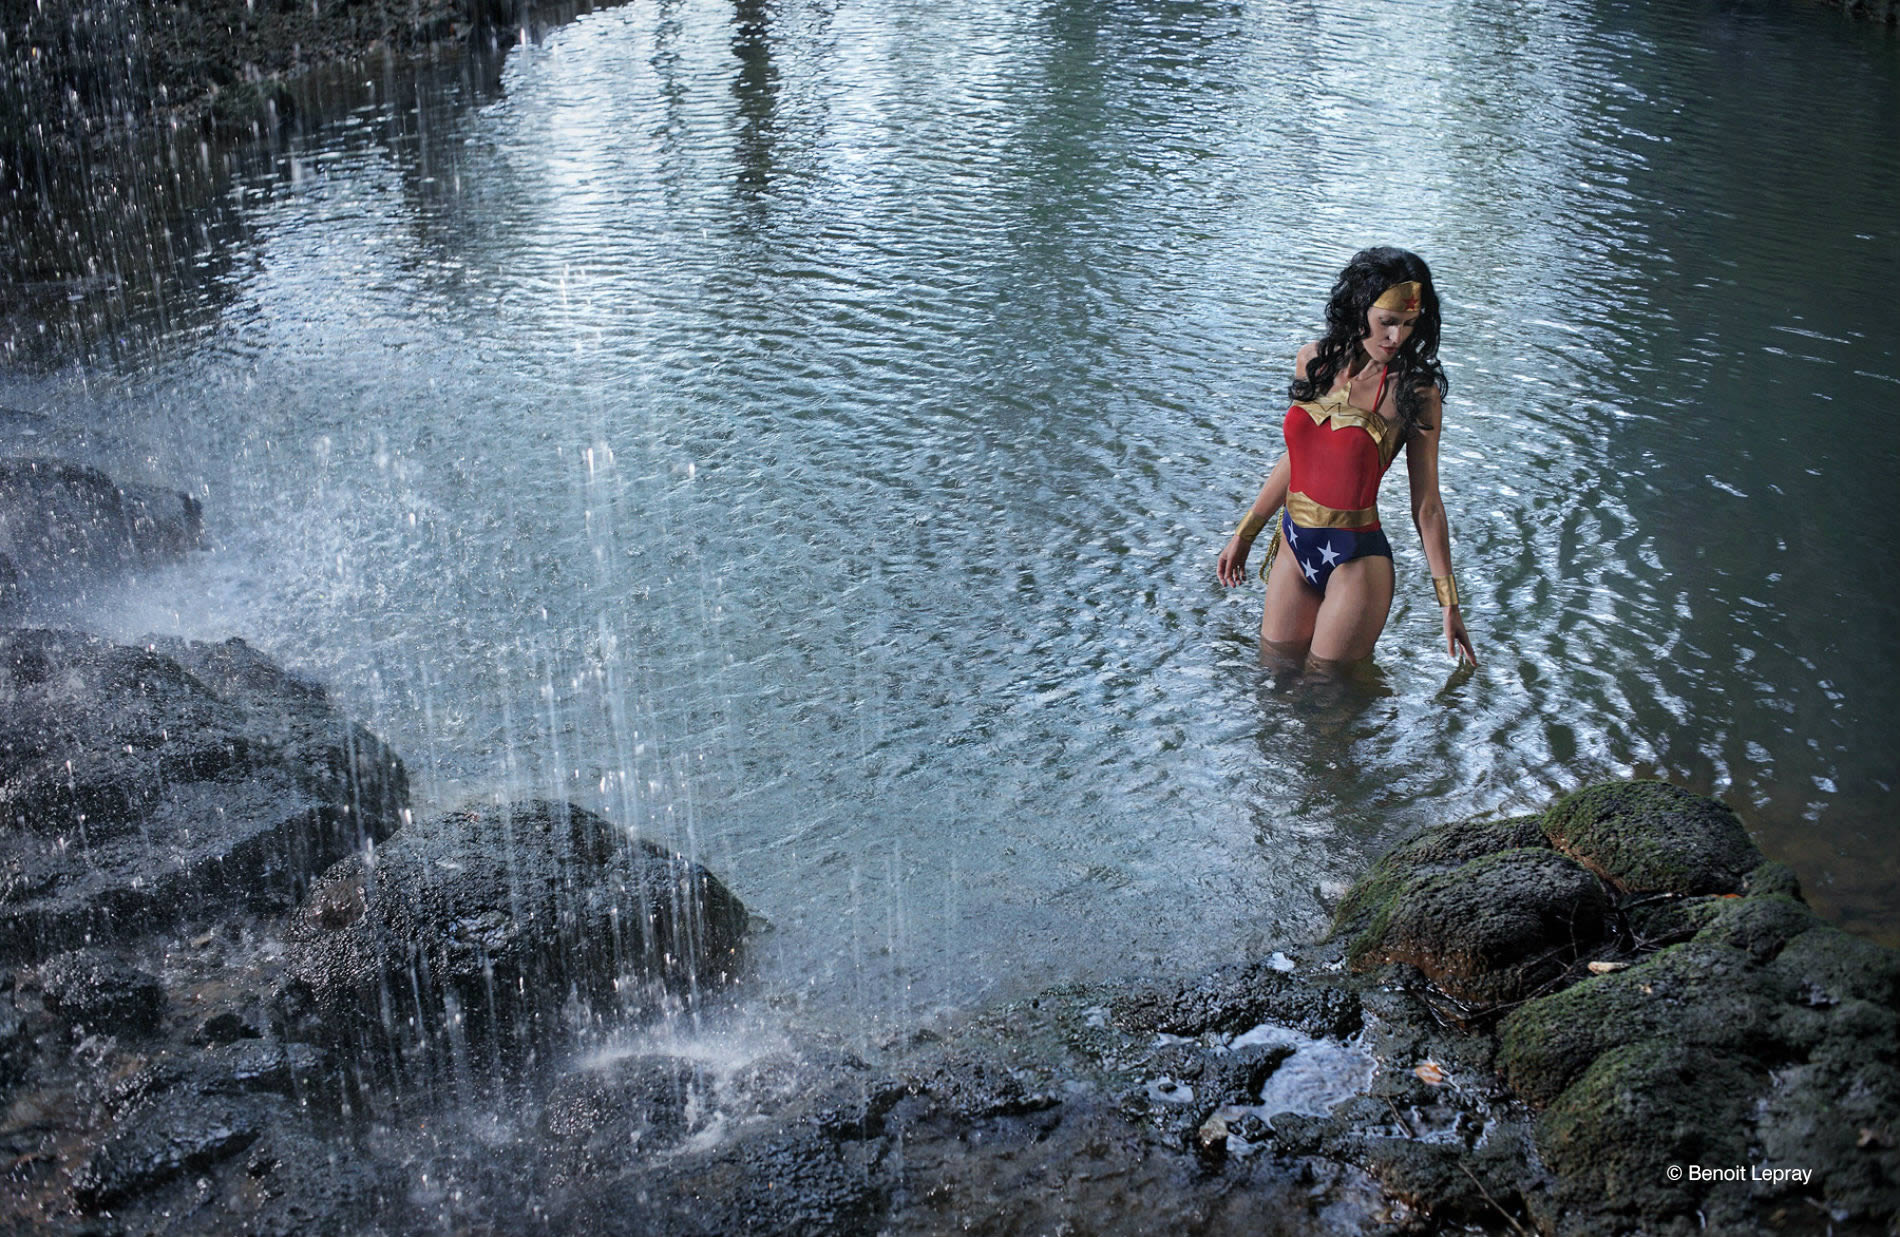 benoit lapray wonder woman waterfall